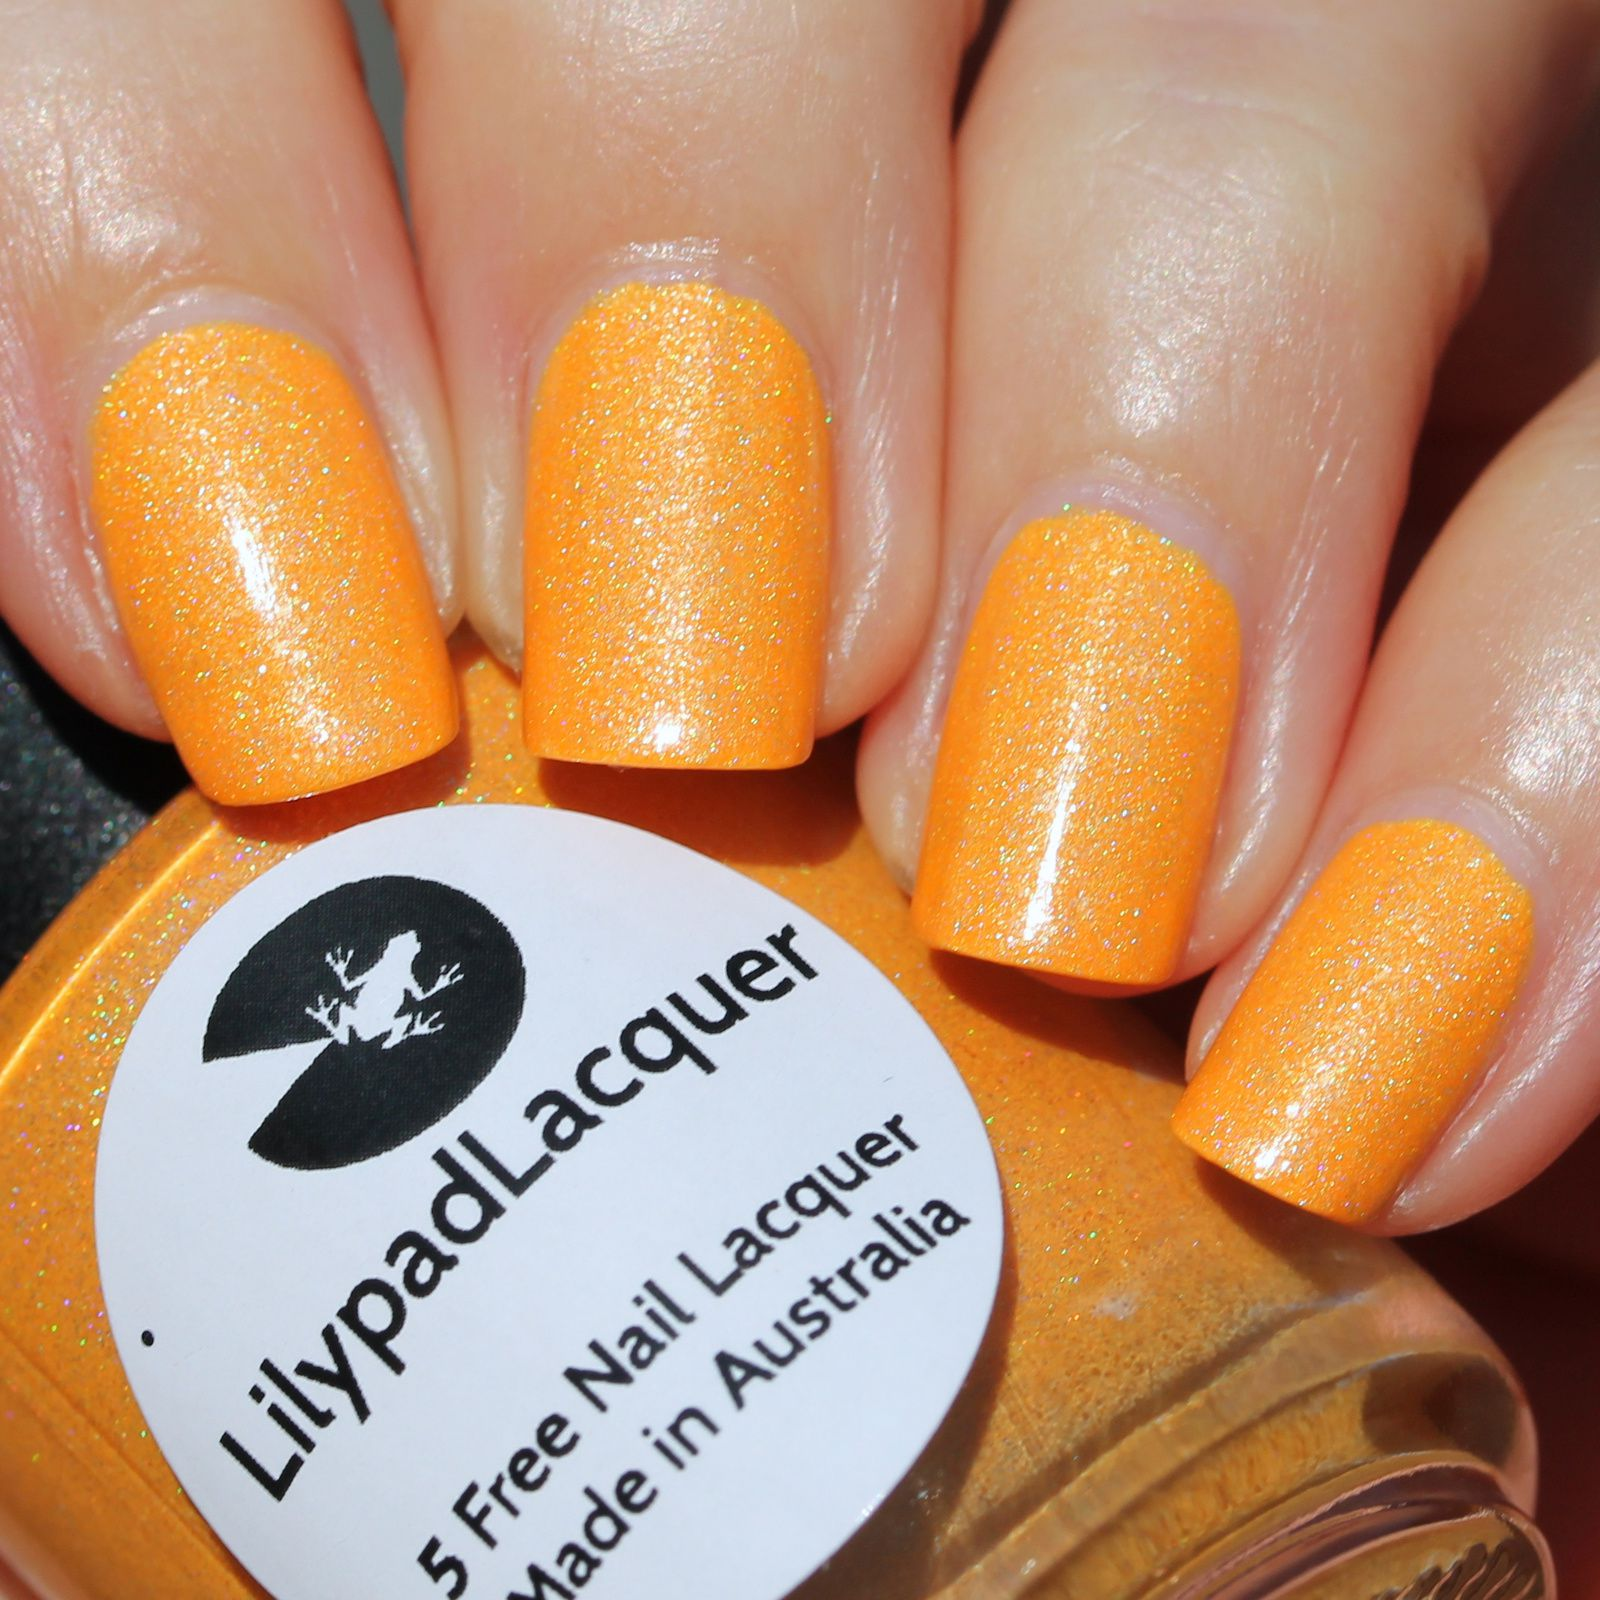 Duri Rejuvacote / Lilypad Lacquer Mango Buzz / Sally Hansen Miracle Gel Top Coat